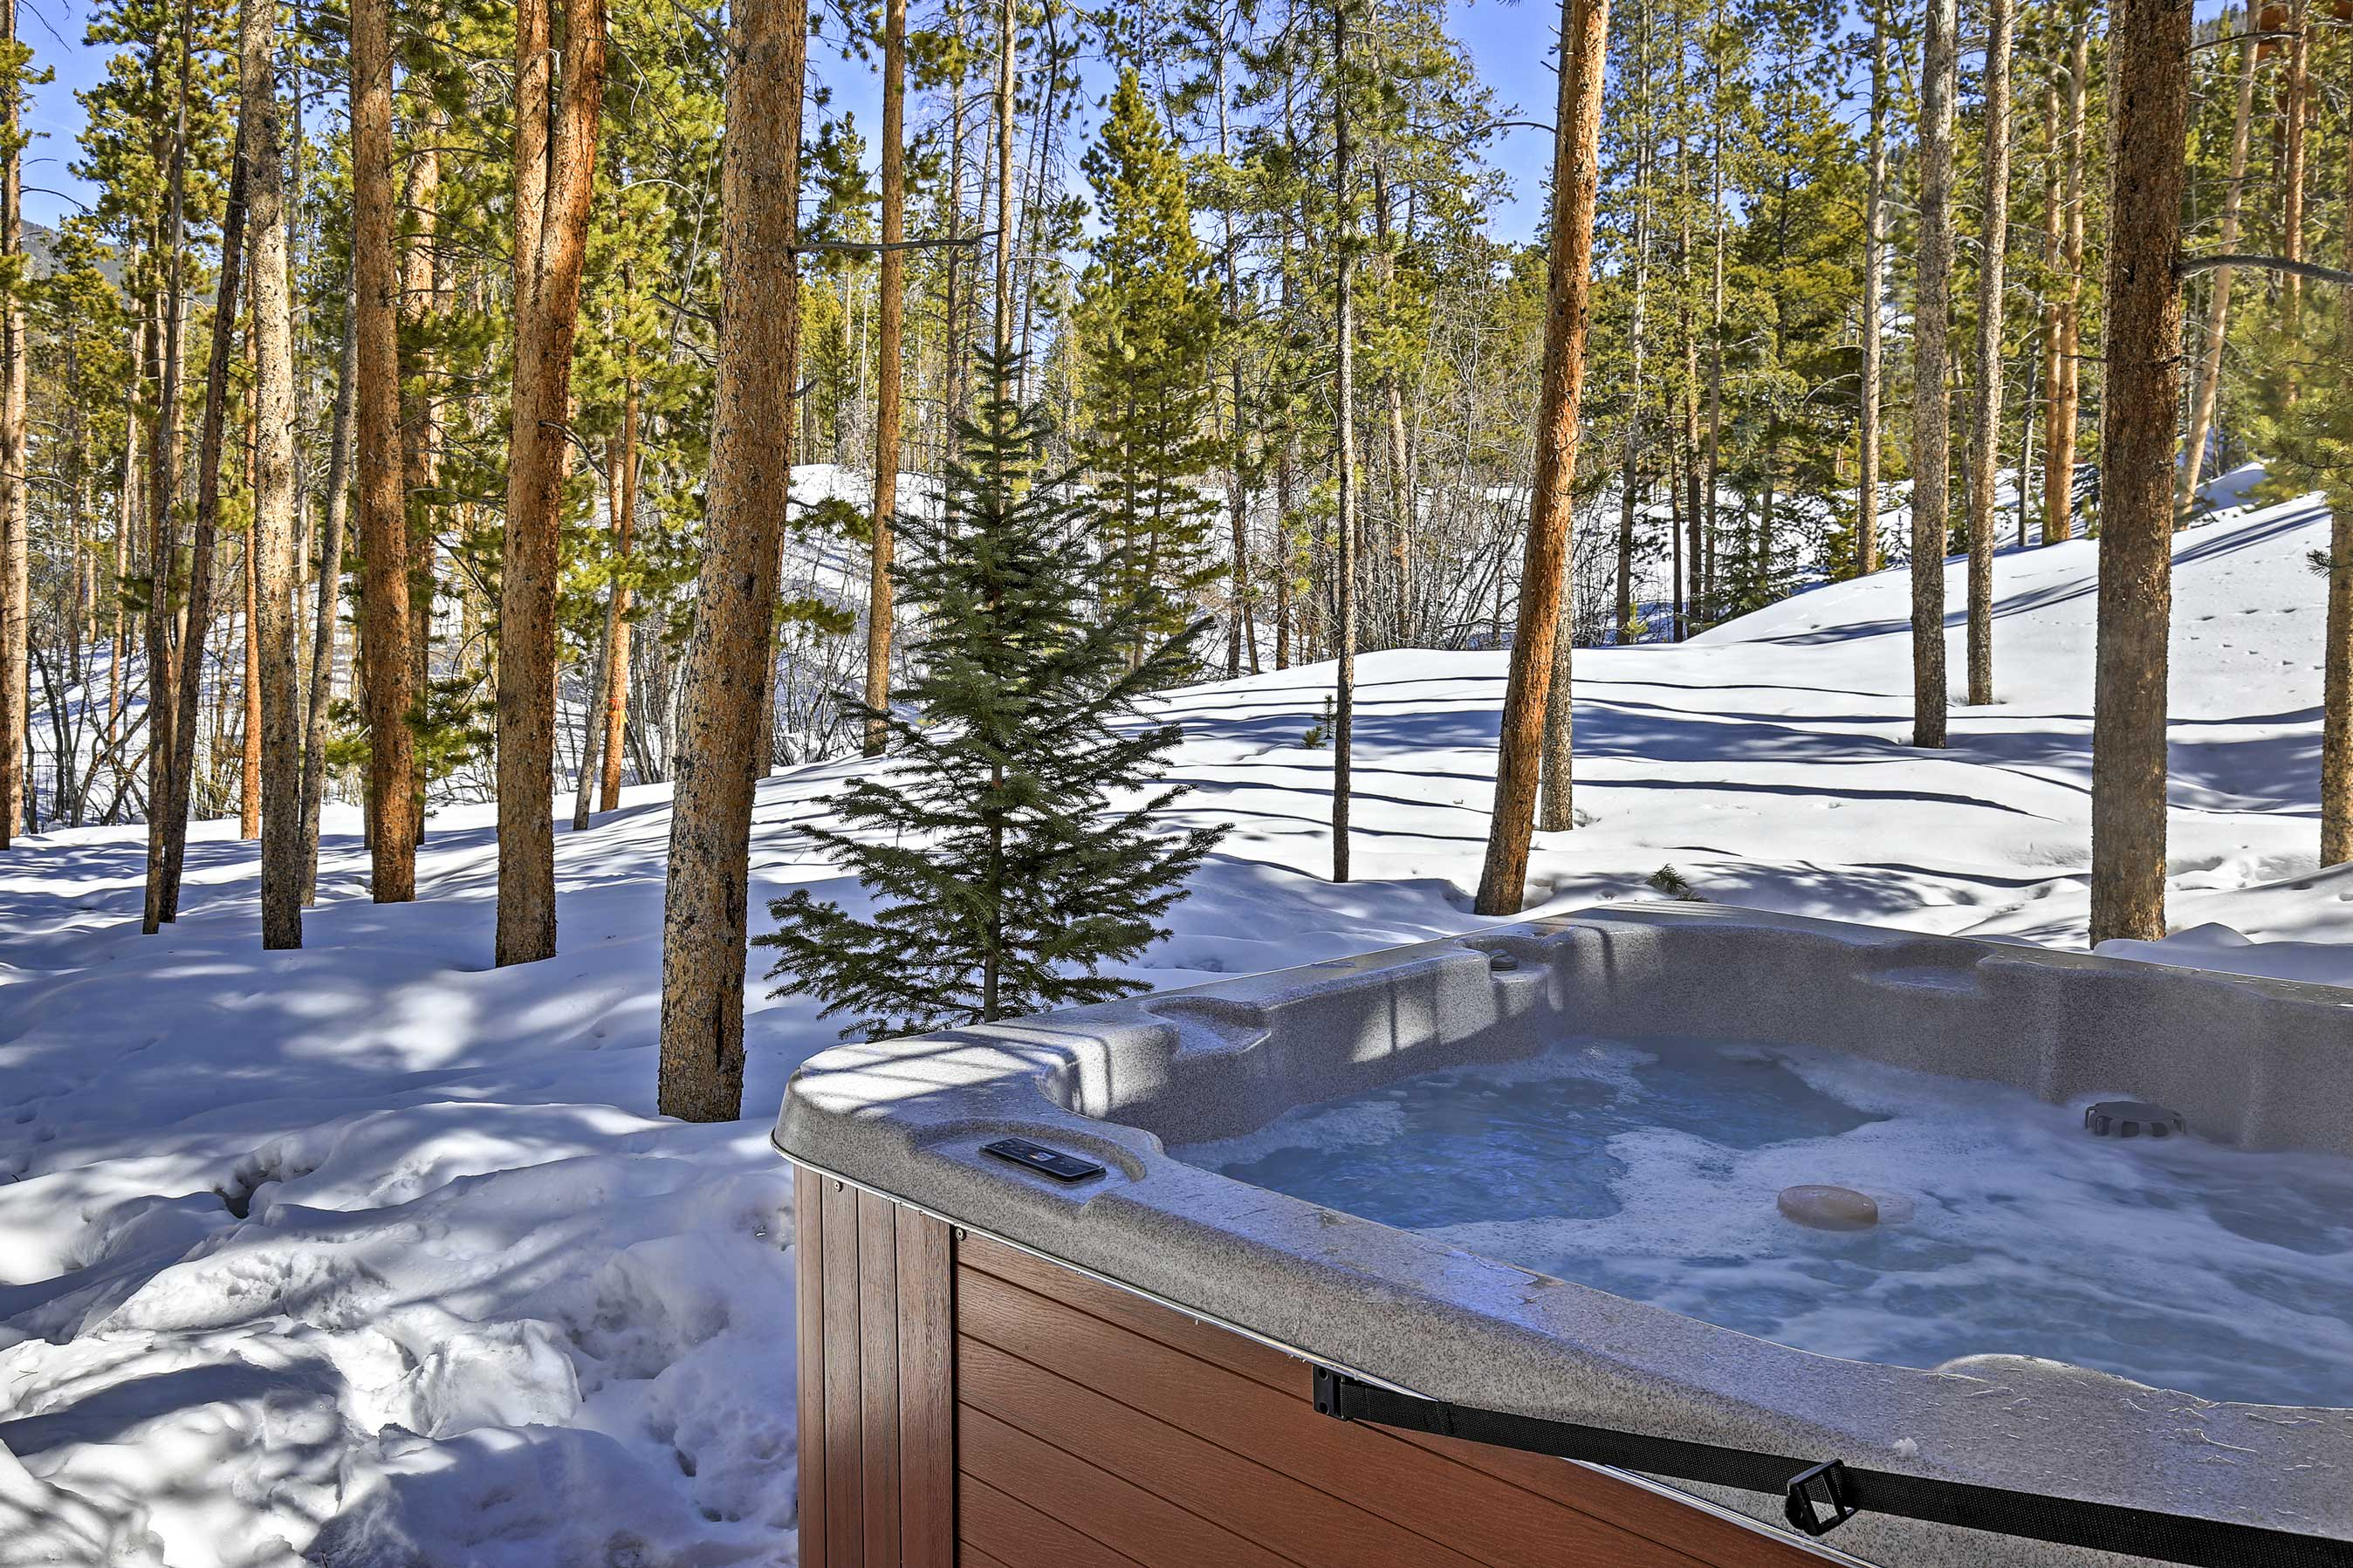 Take a soothing soak in the hot tub!